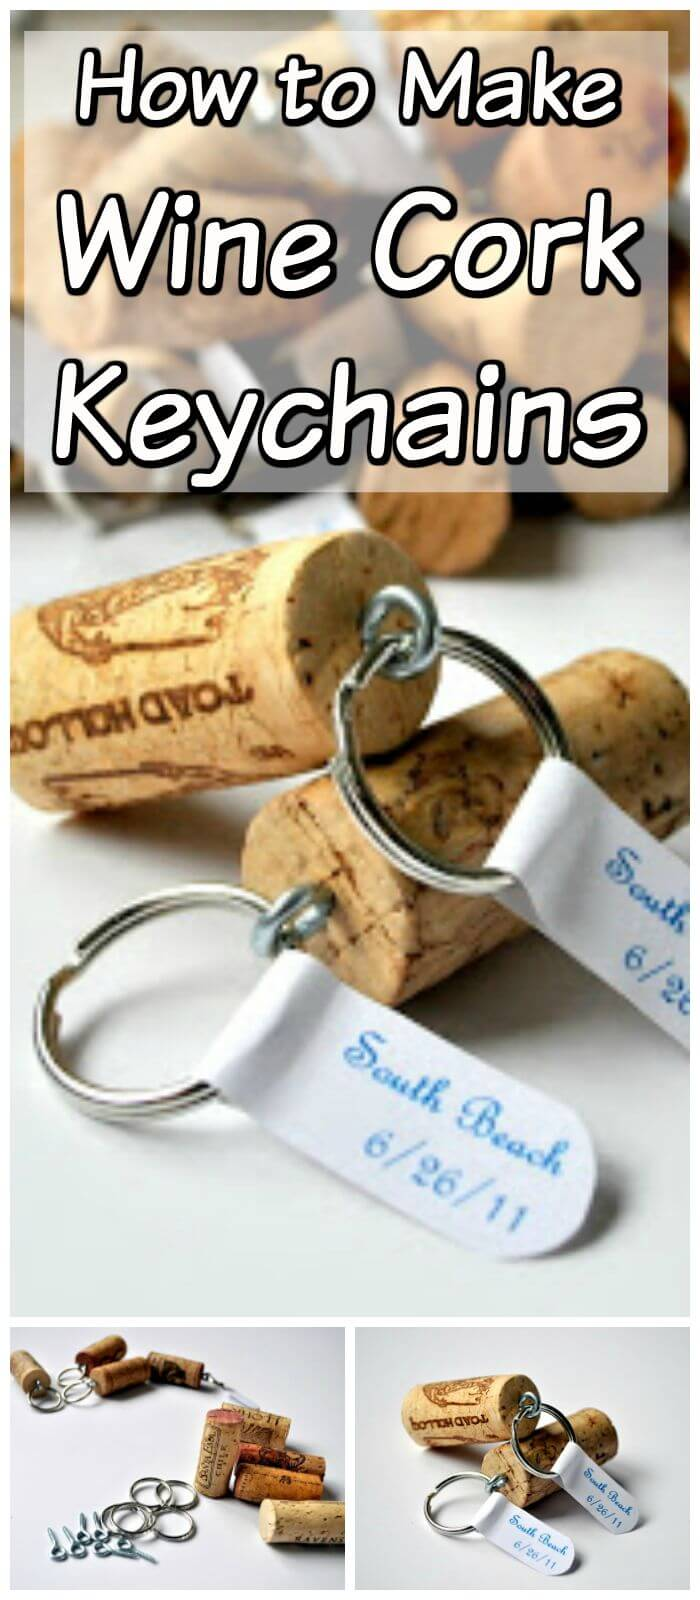 How To Make A Book Keychain : Easy craft ideas to make and sell diy crafts